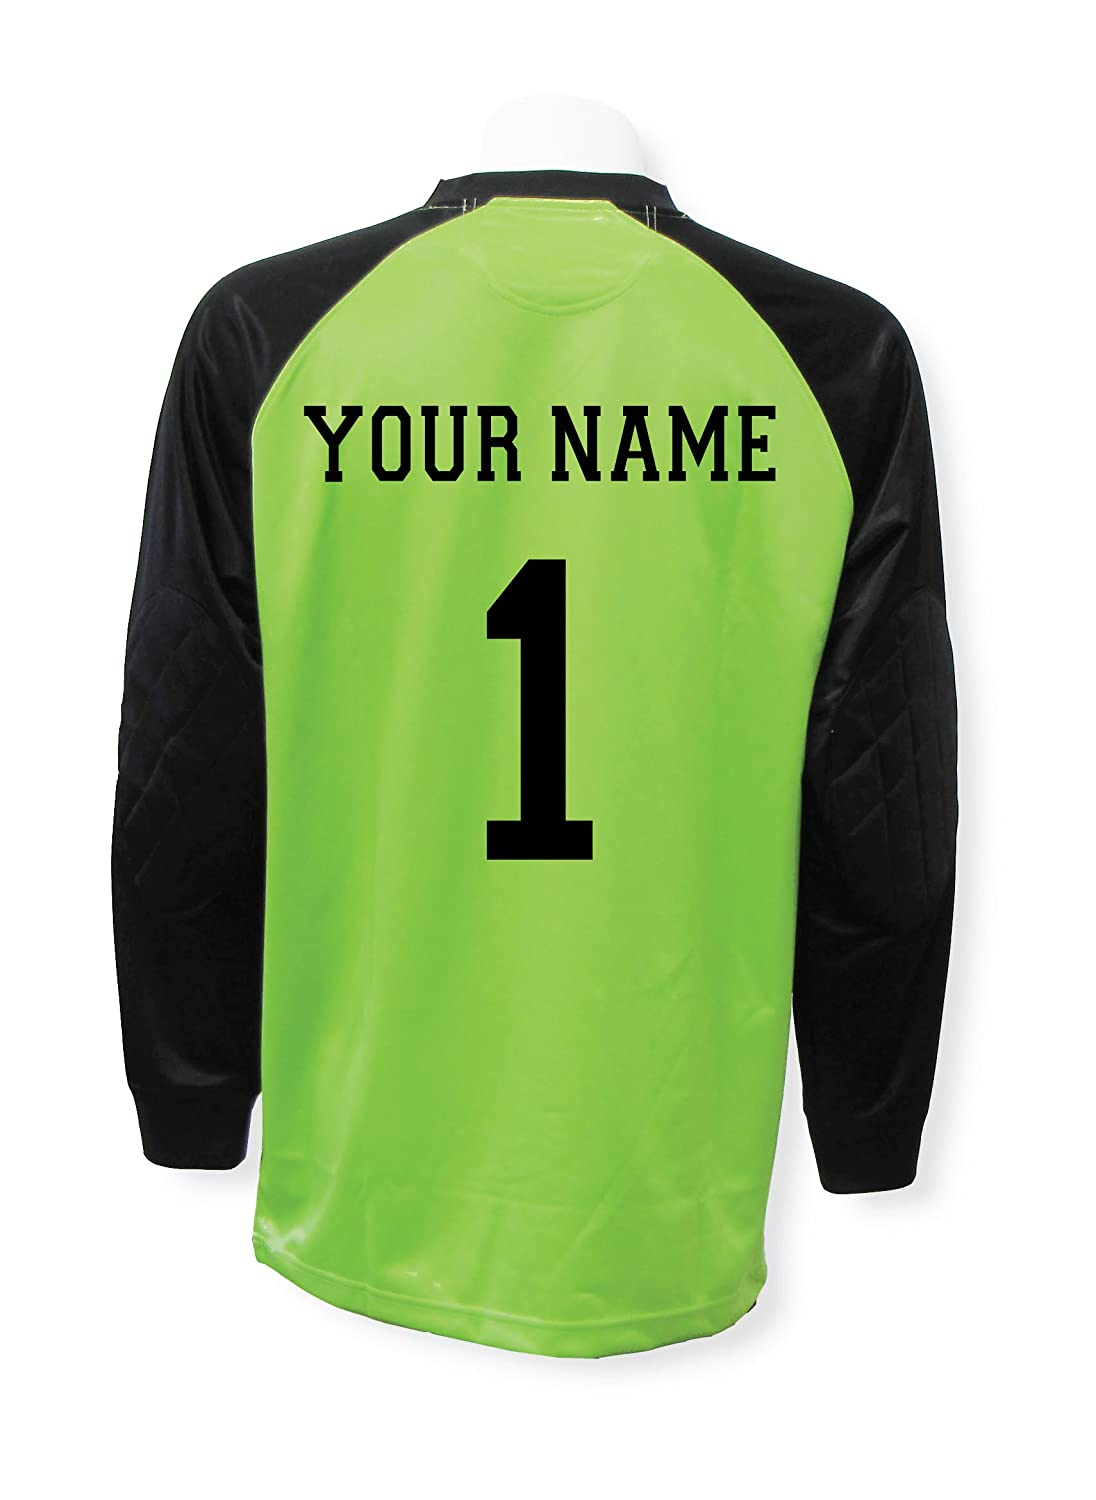 Soccer Goalkeeper Jersey Personalized with your name and number B013TSSEI4 Adult Large|ライムグリーン ライムグリーン Adult Large